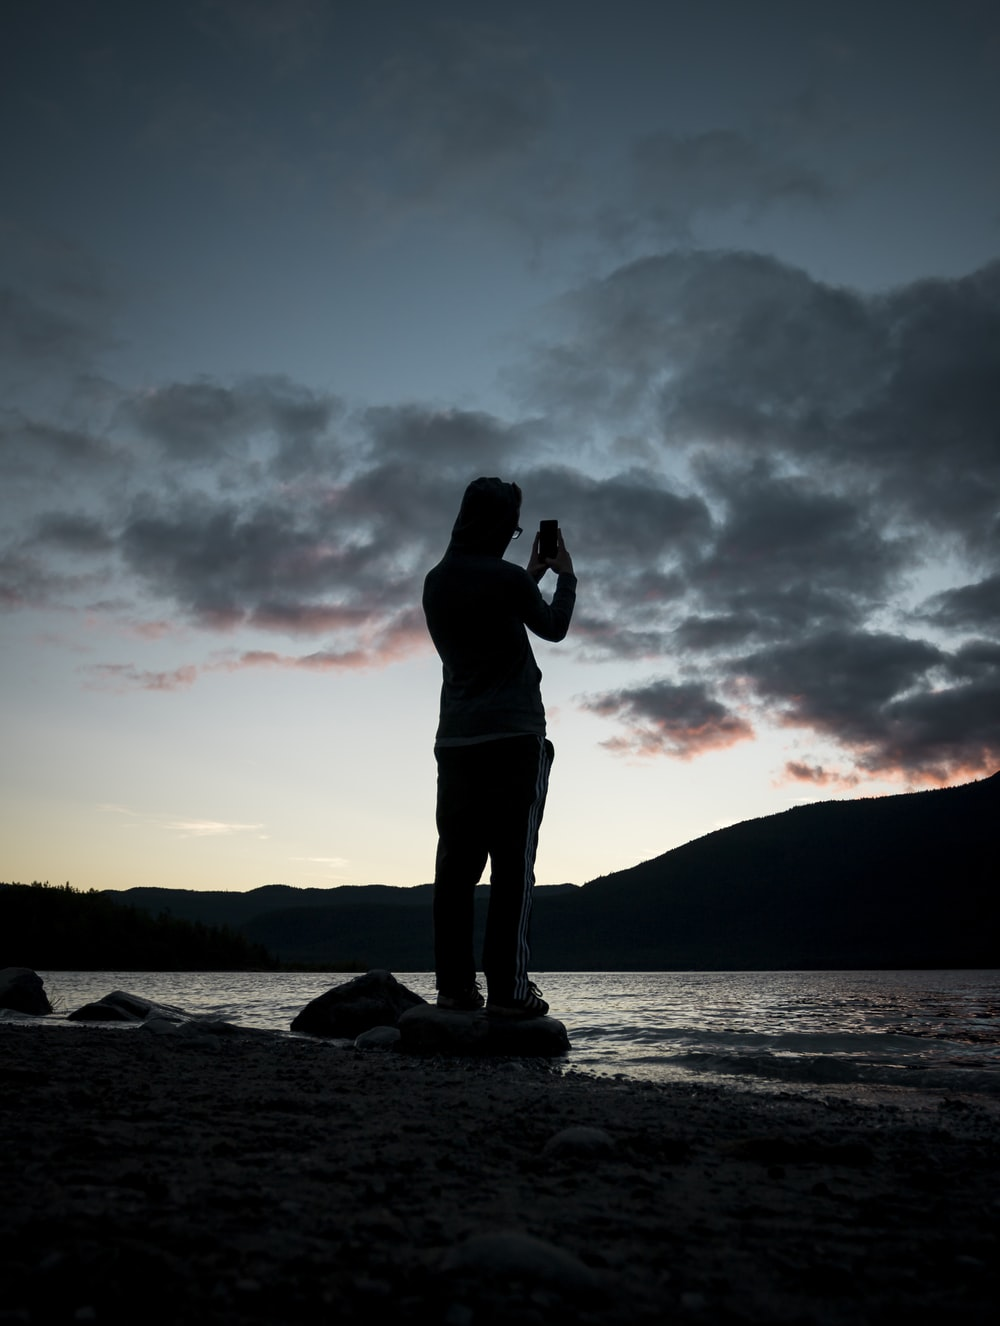 silhouette of person near body of water